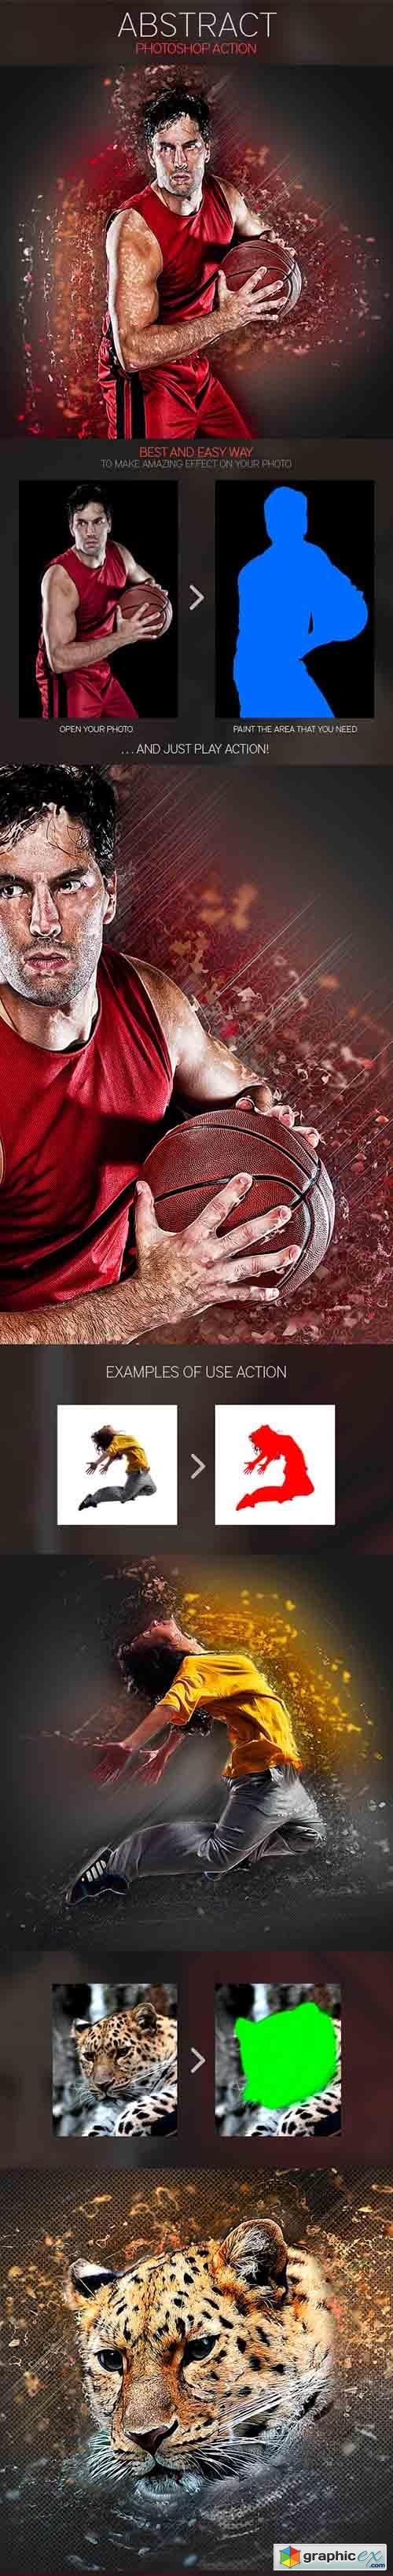 Abstract Photoshop Action 9325380